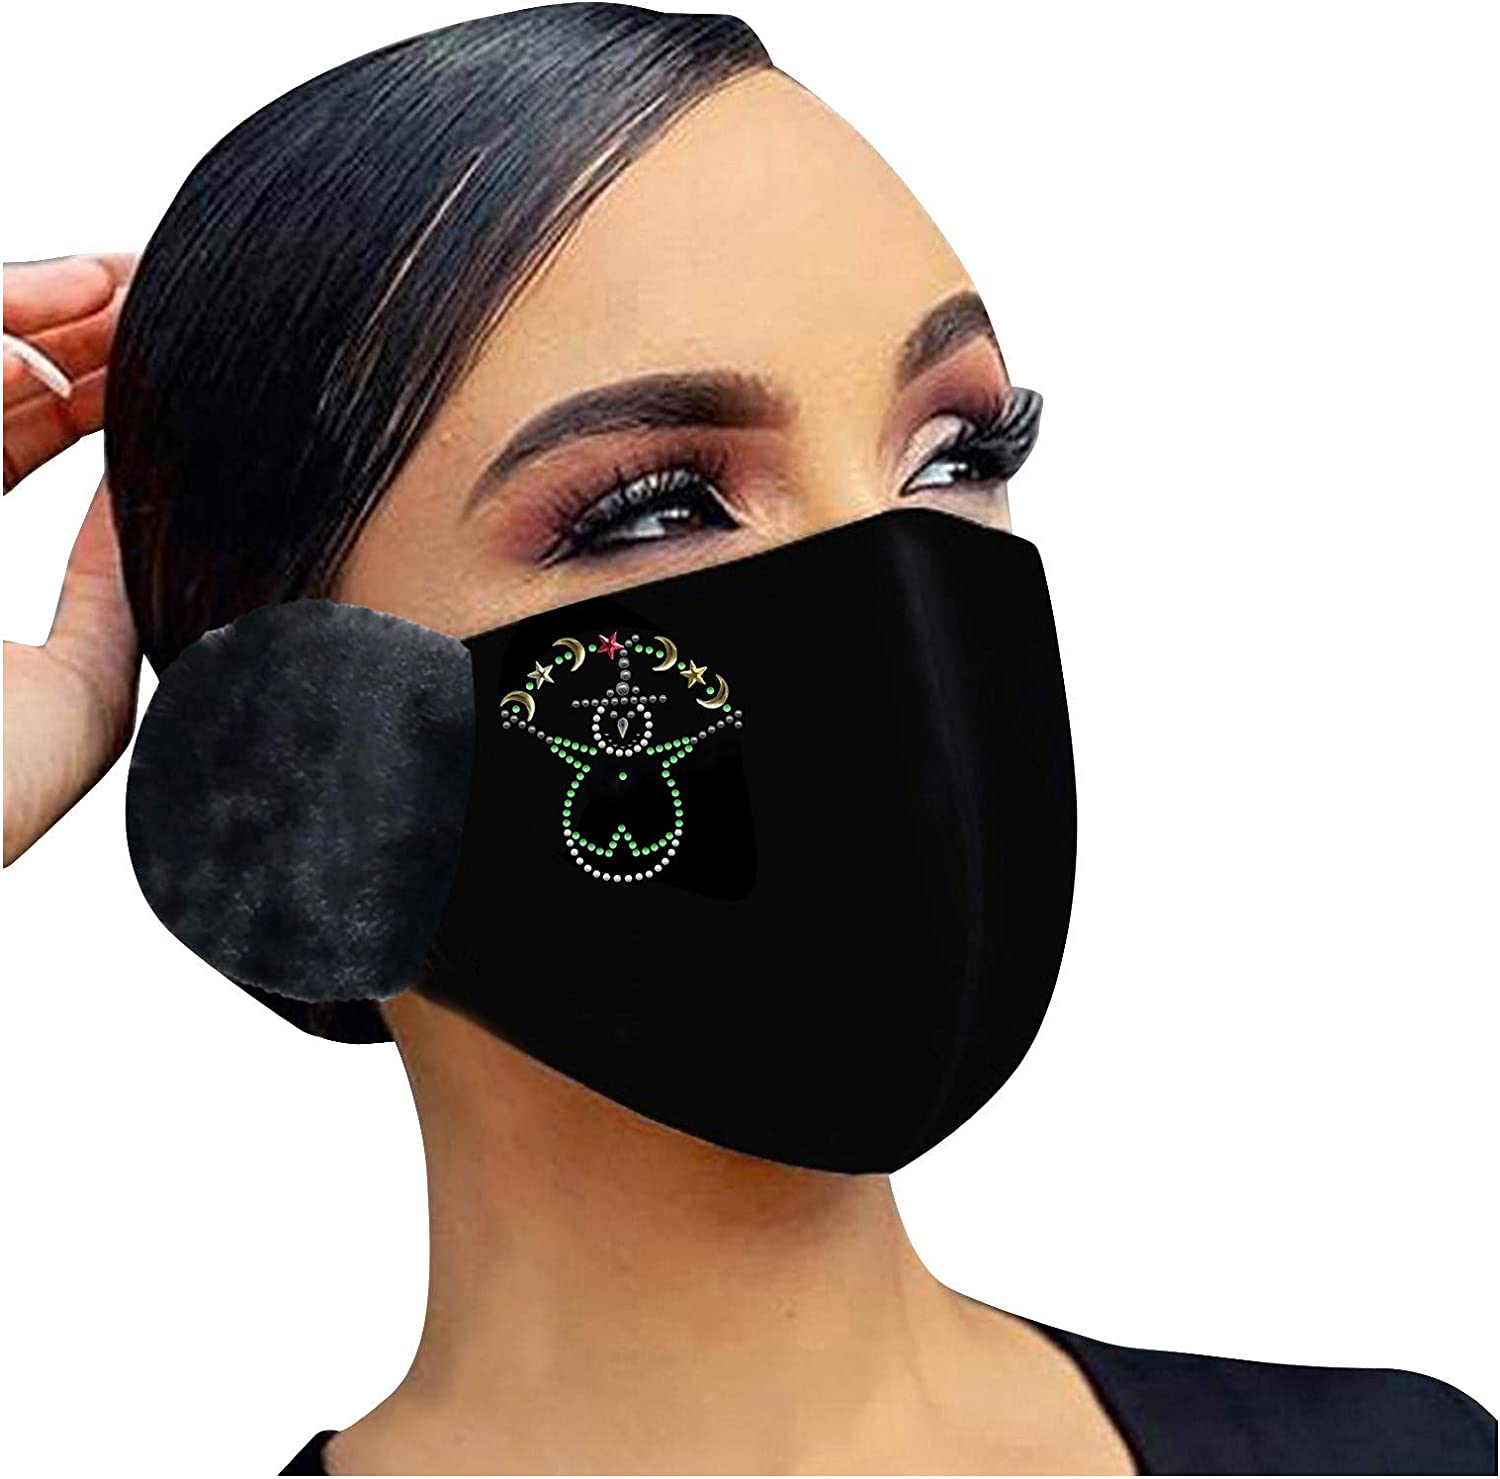 Nopeak 2-in-1 Face Bandanas With Earmuffs for Adult,Washable Windproof Mouth Caps, Winter Rhinestone Warm Ear Muffs